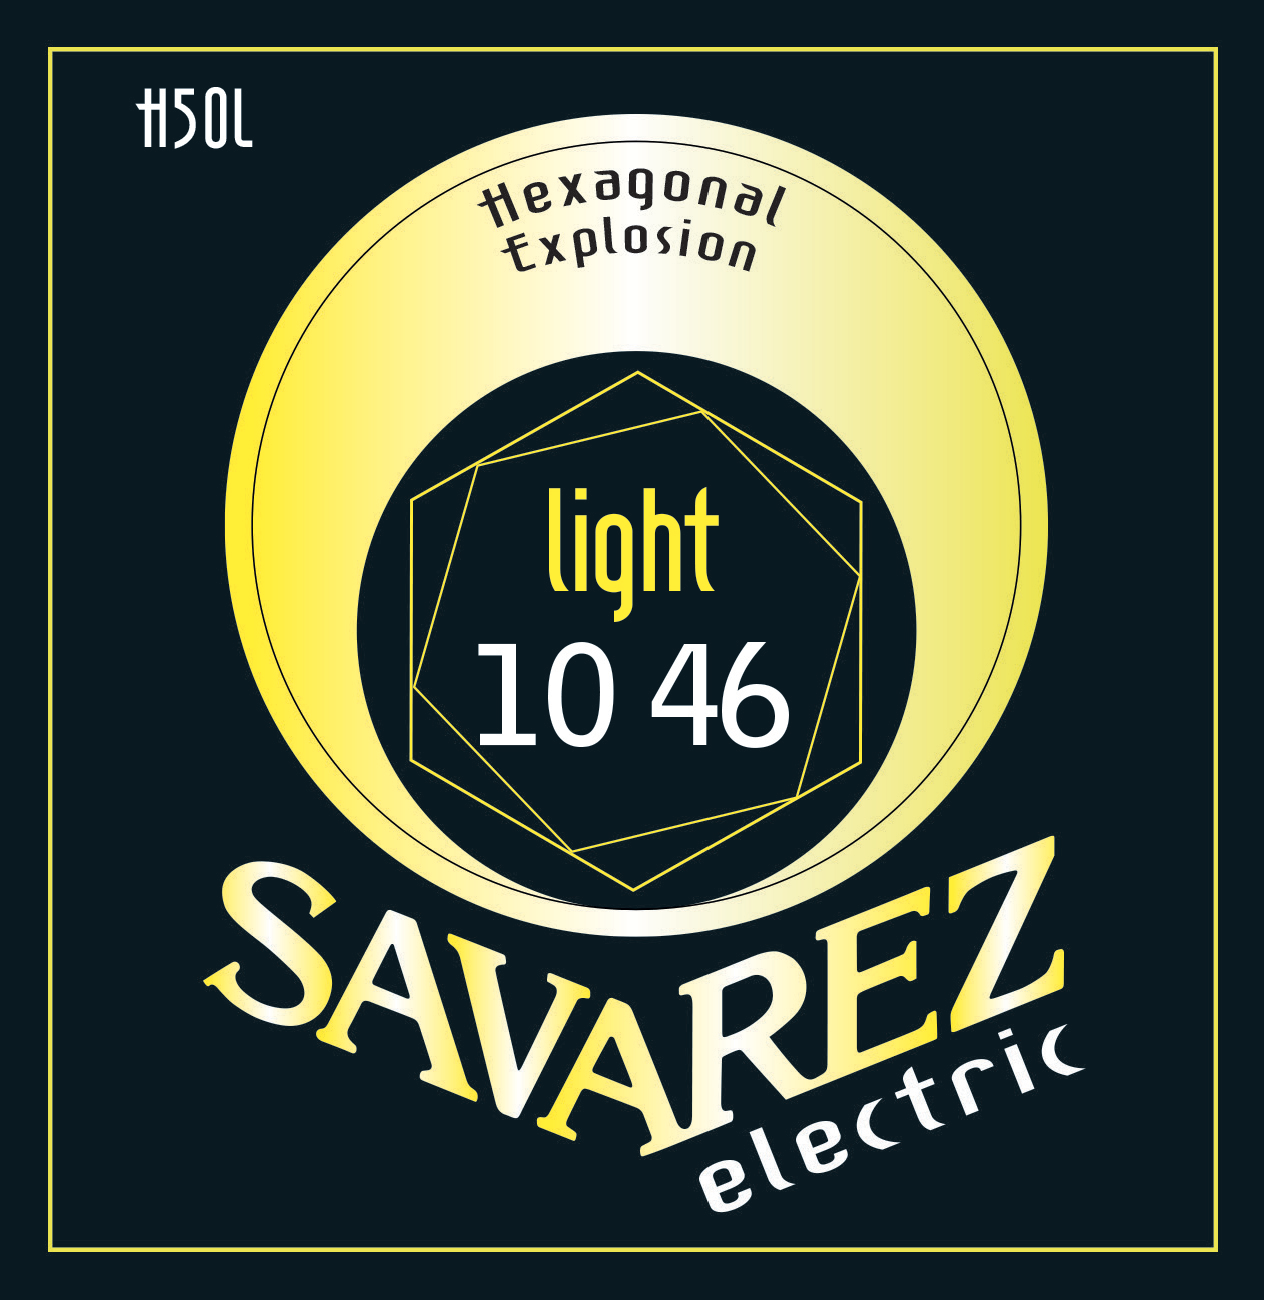 SAVAREZ ELECTRIC HEXAGONAL EXPLOSION H50L